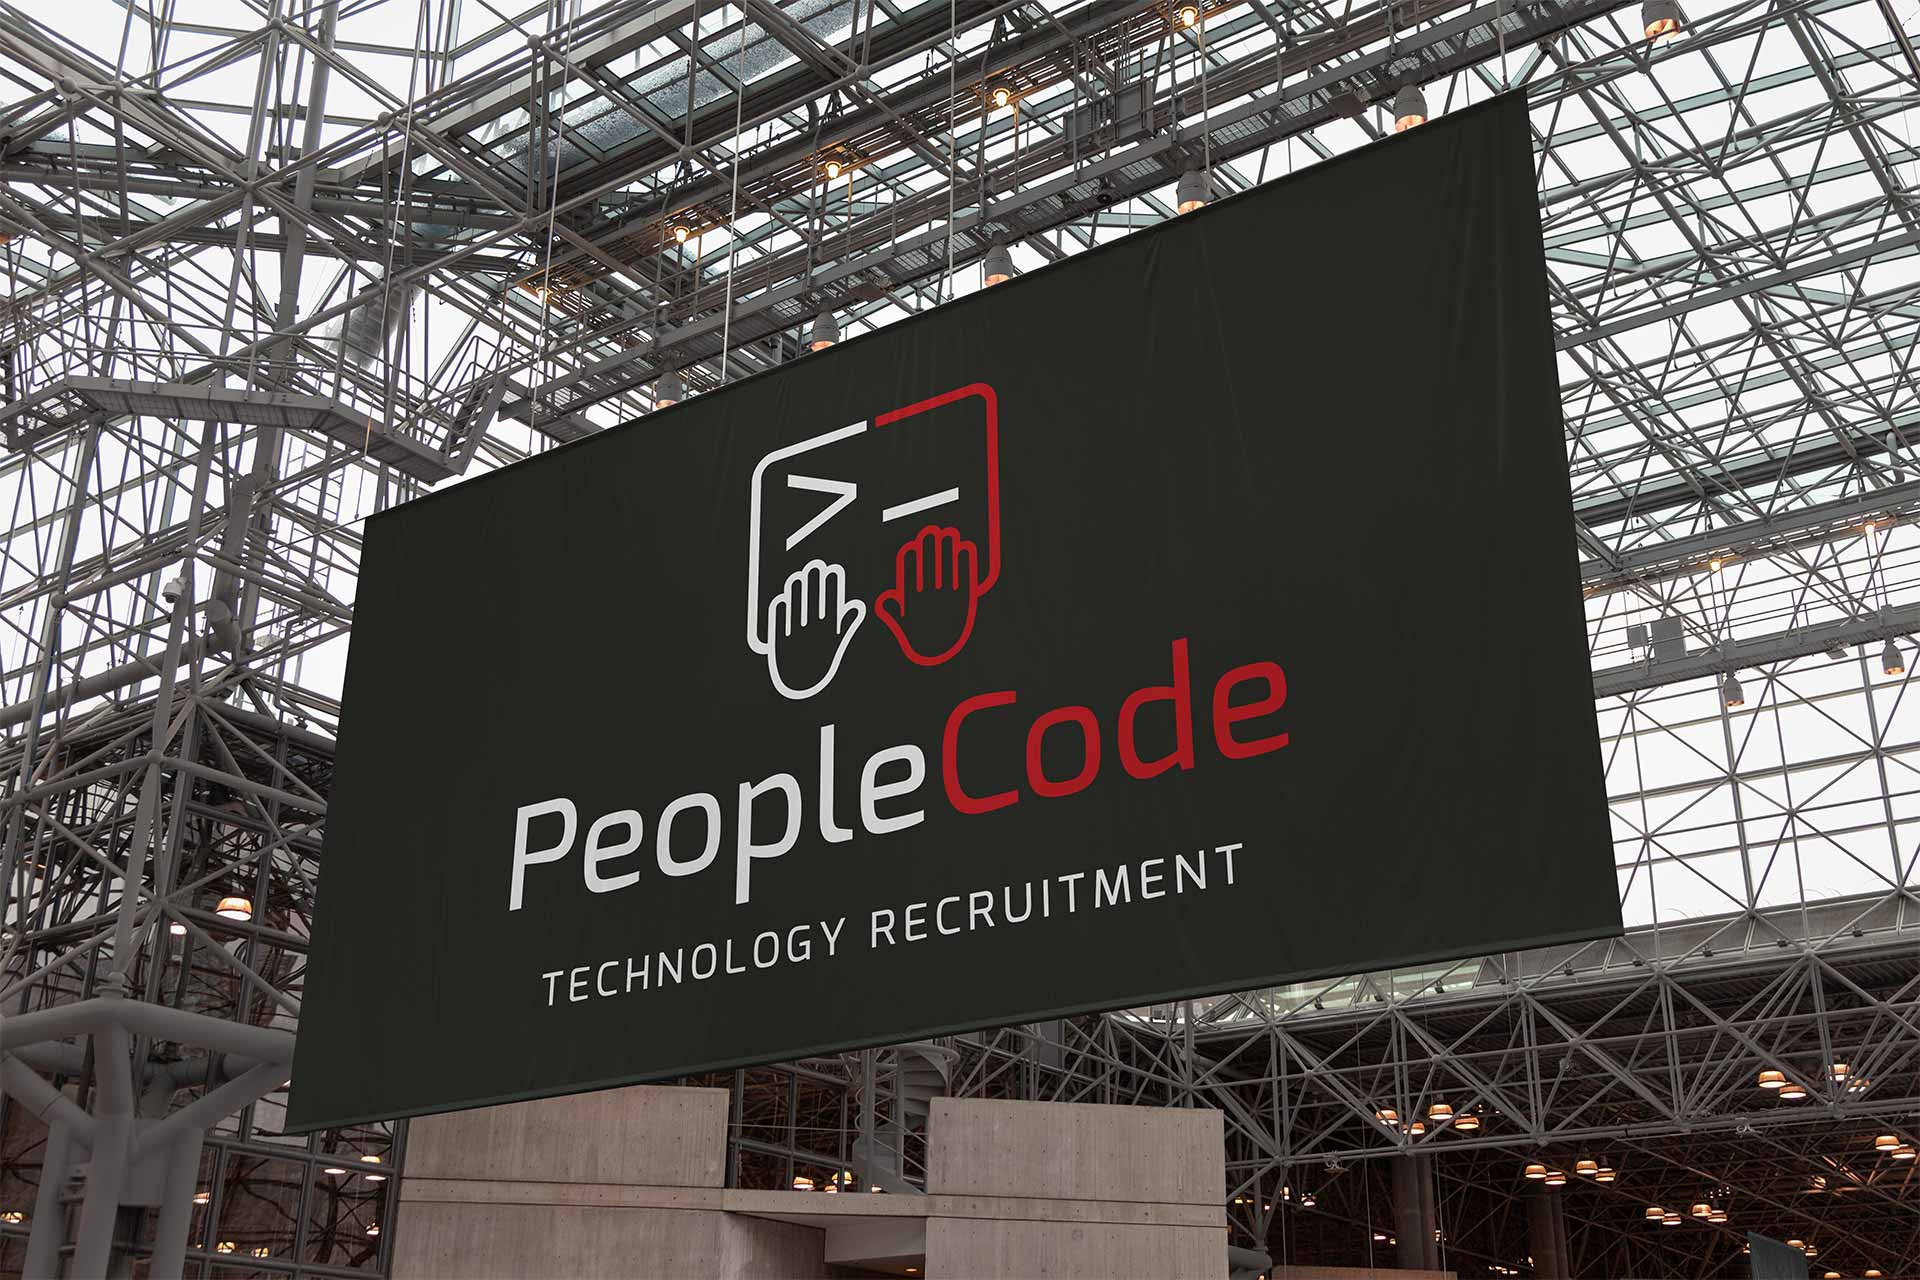 People Code Logo Design on and Exhibition Banner